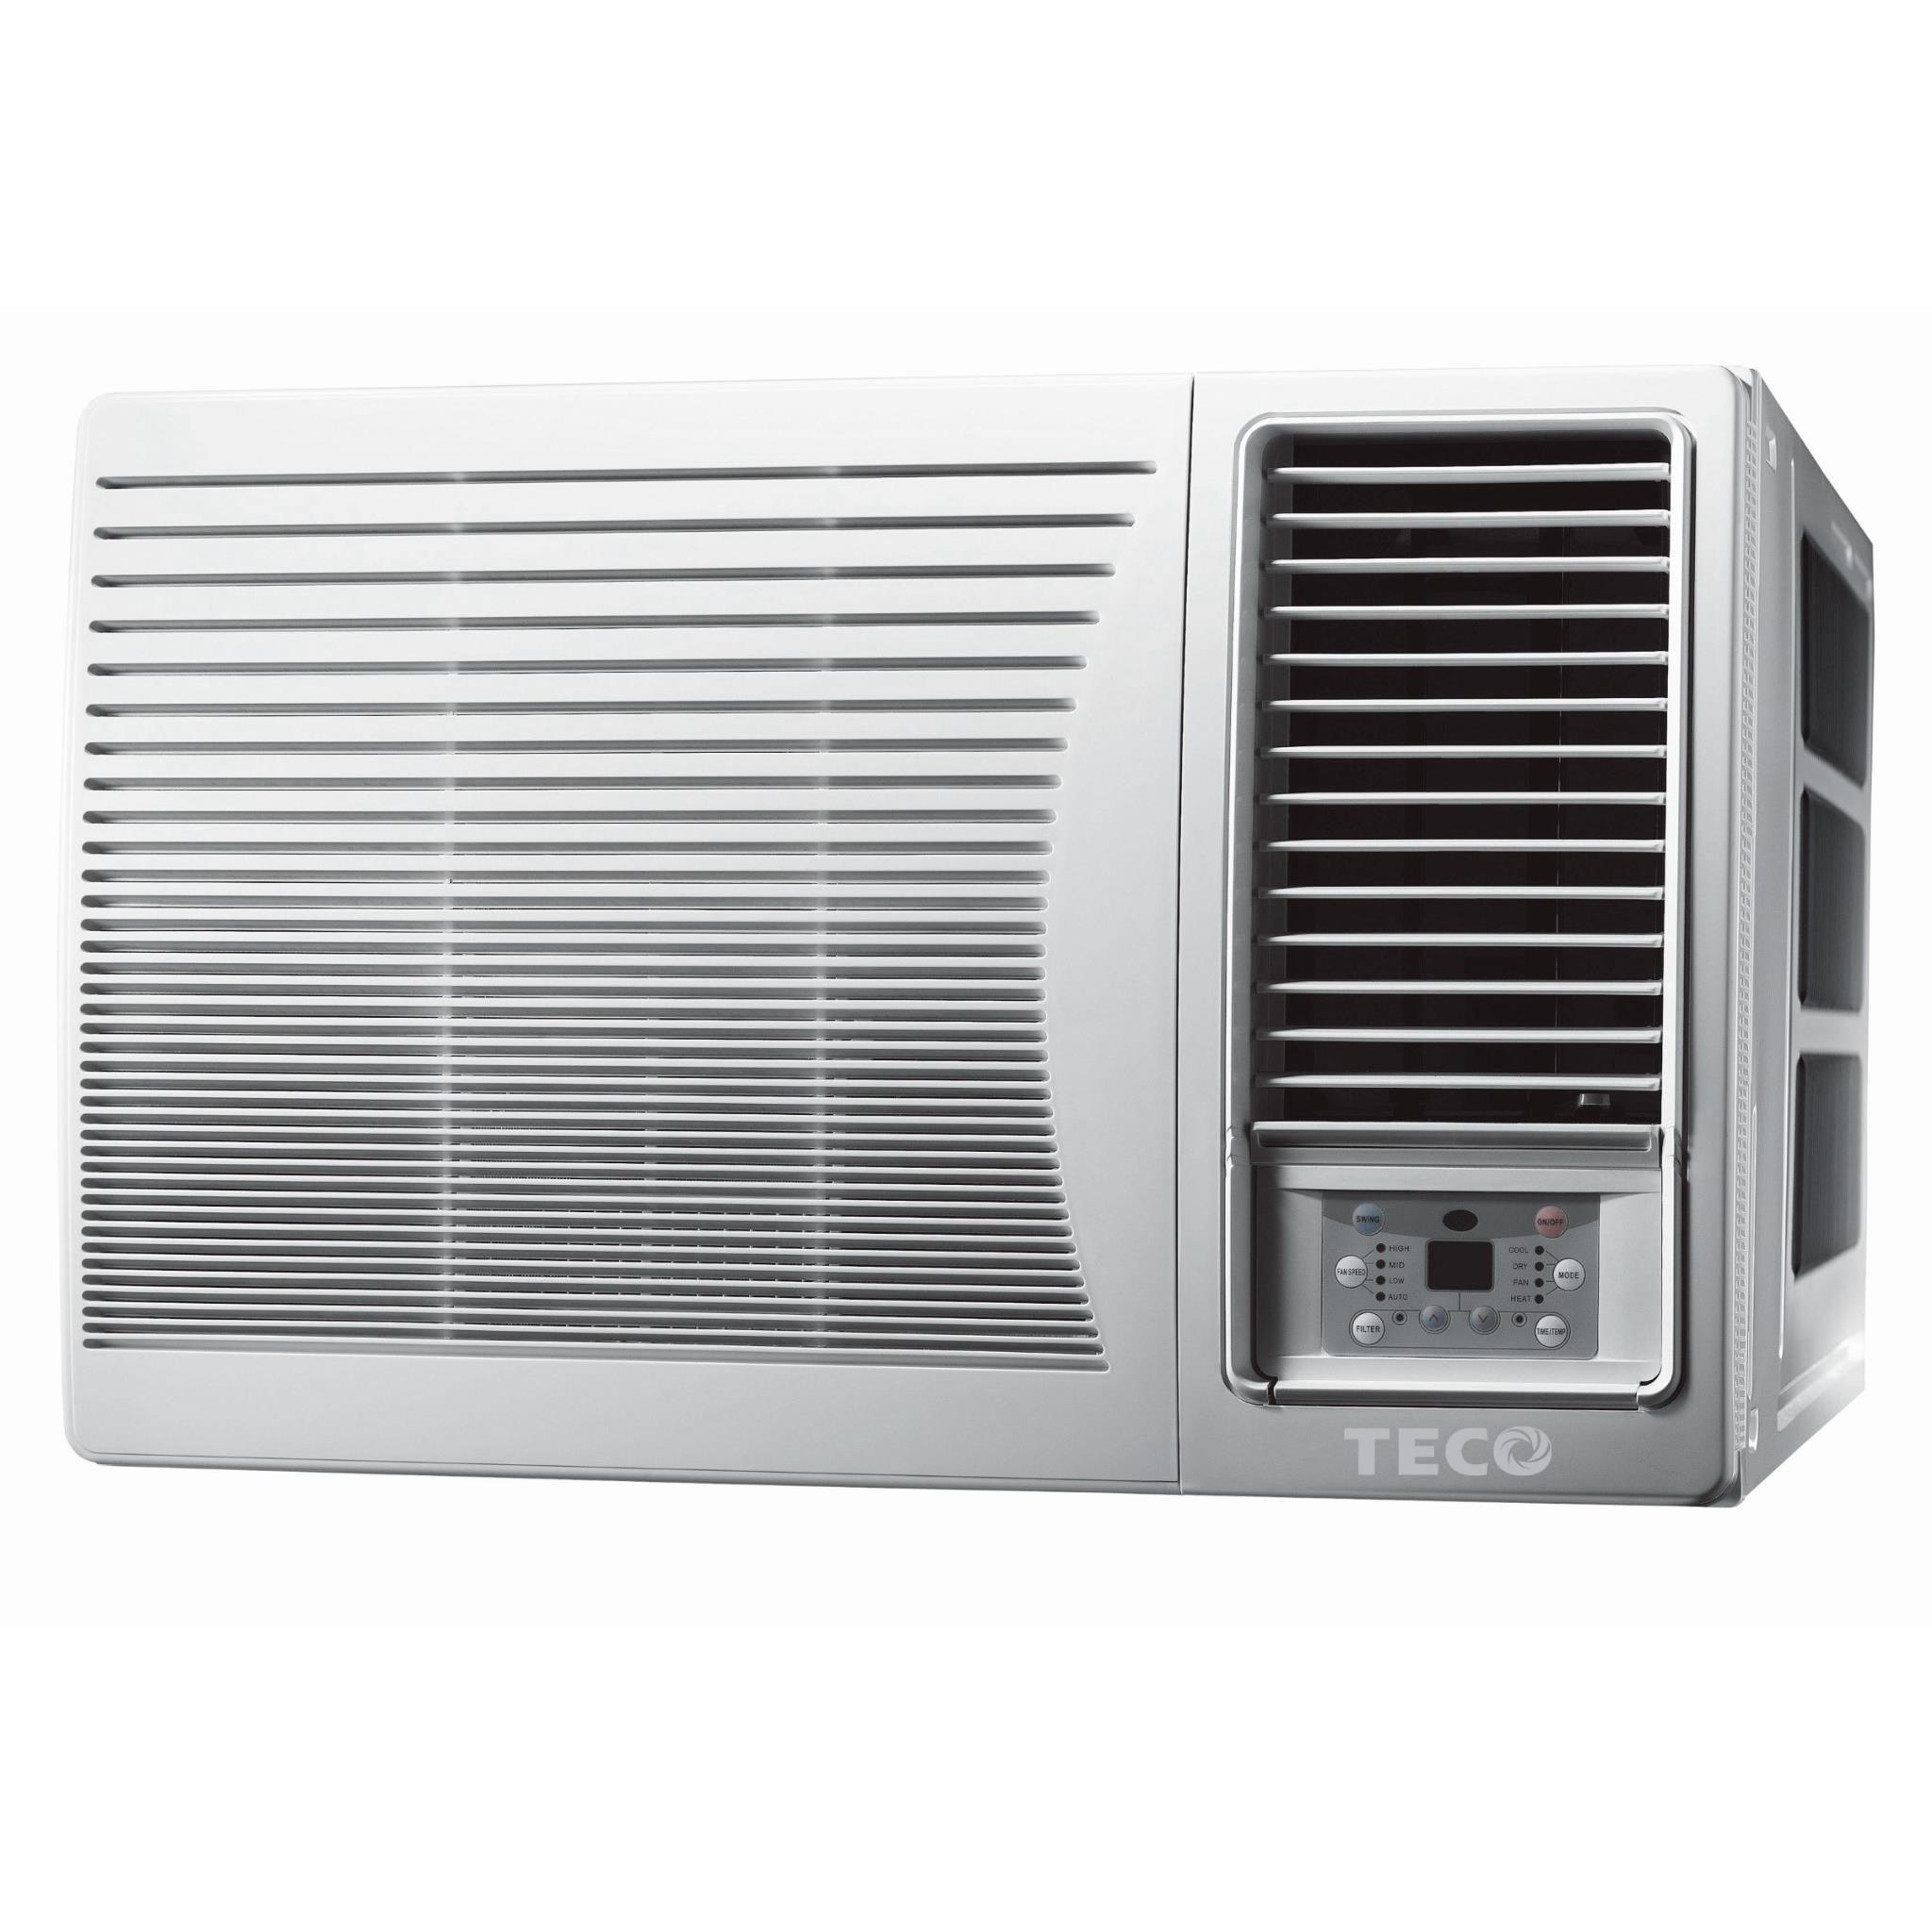 Teco 2.2kW Window/Wall Room Reverse Cycle Air Conditioner